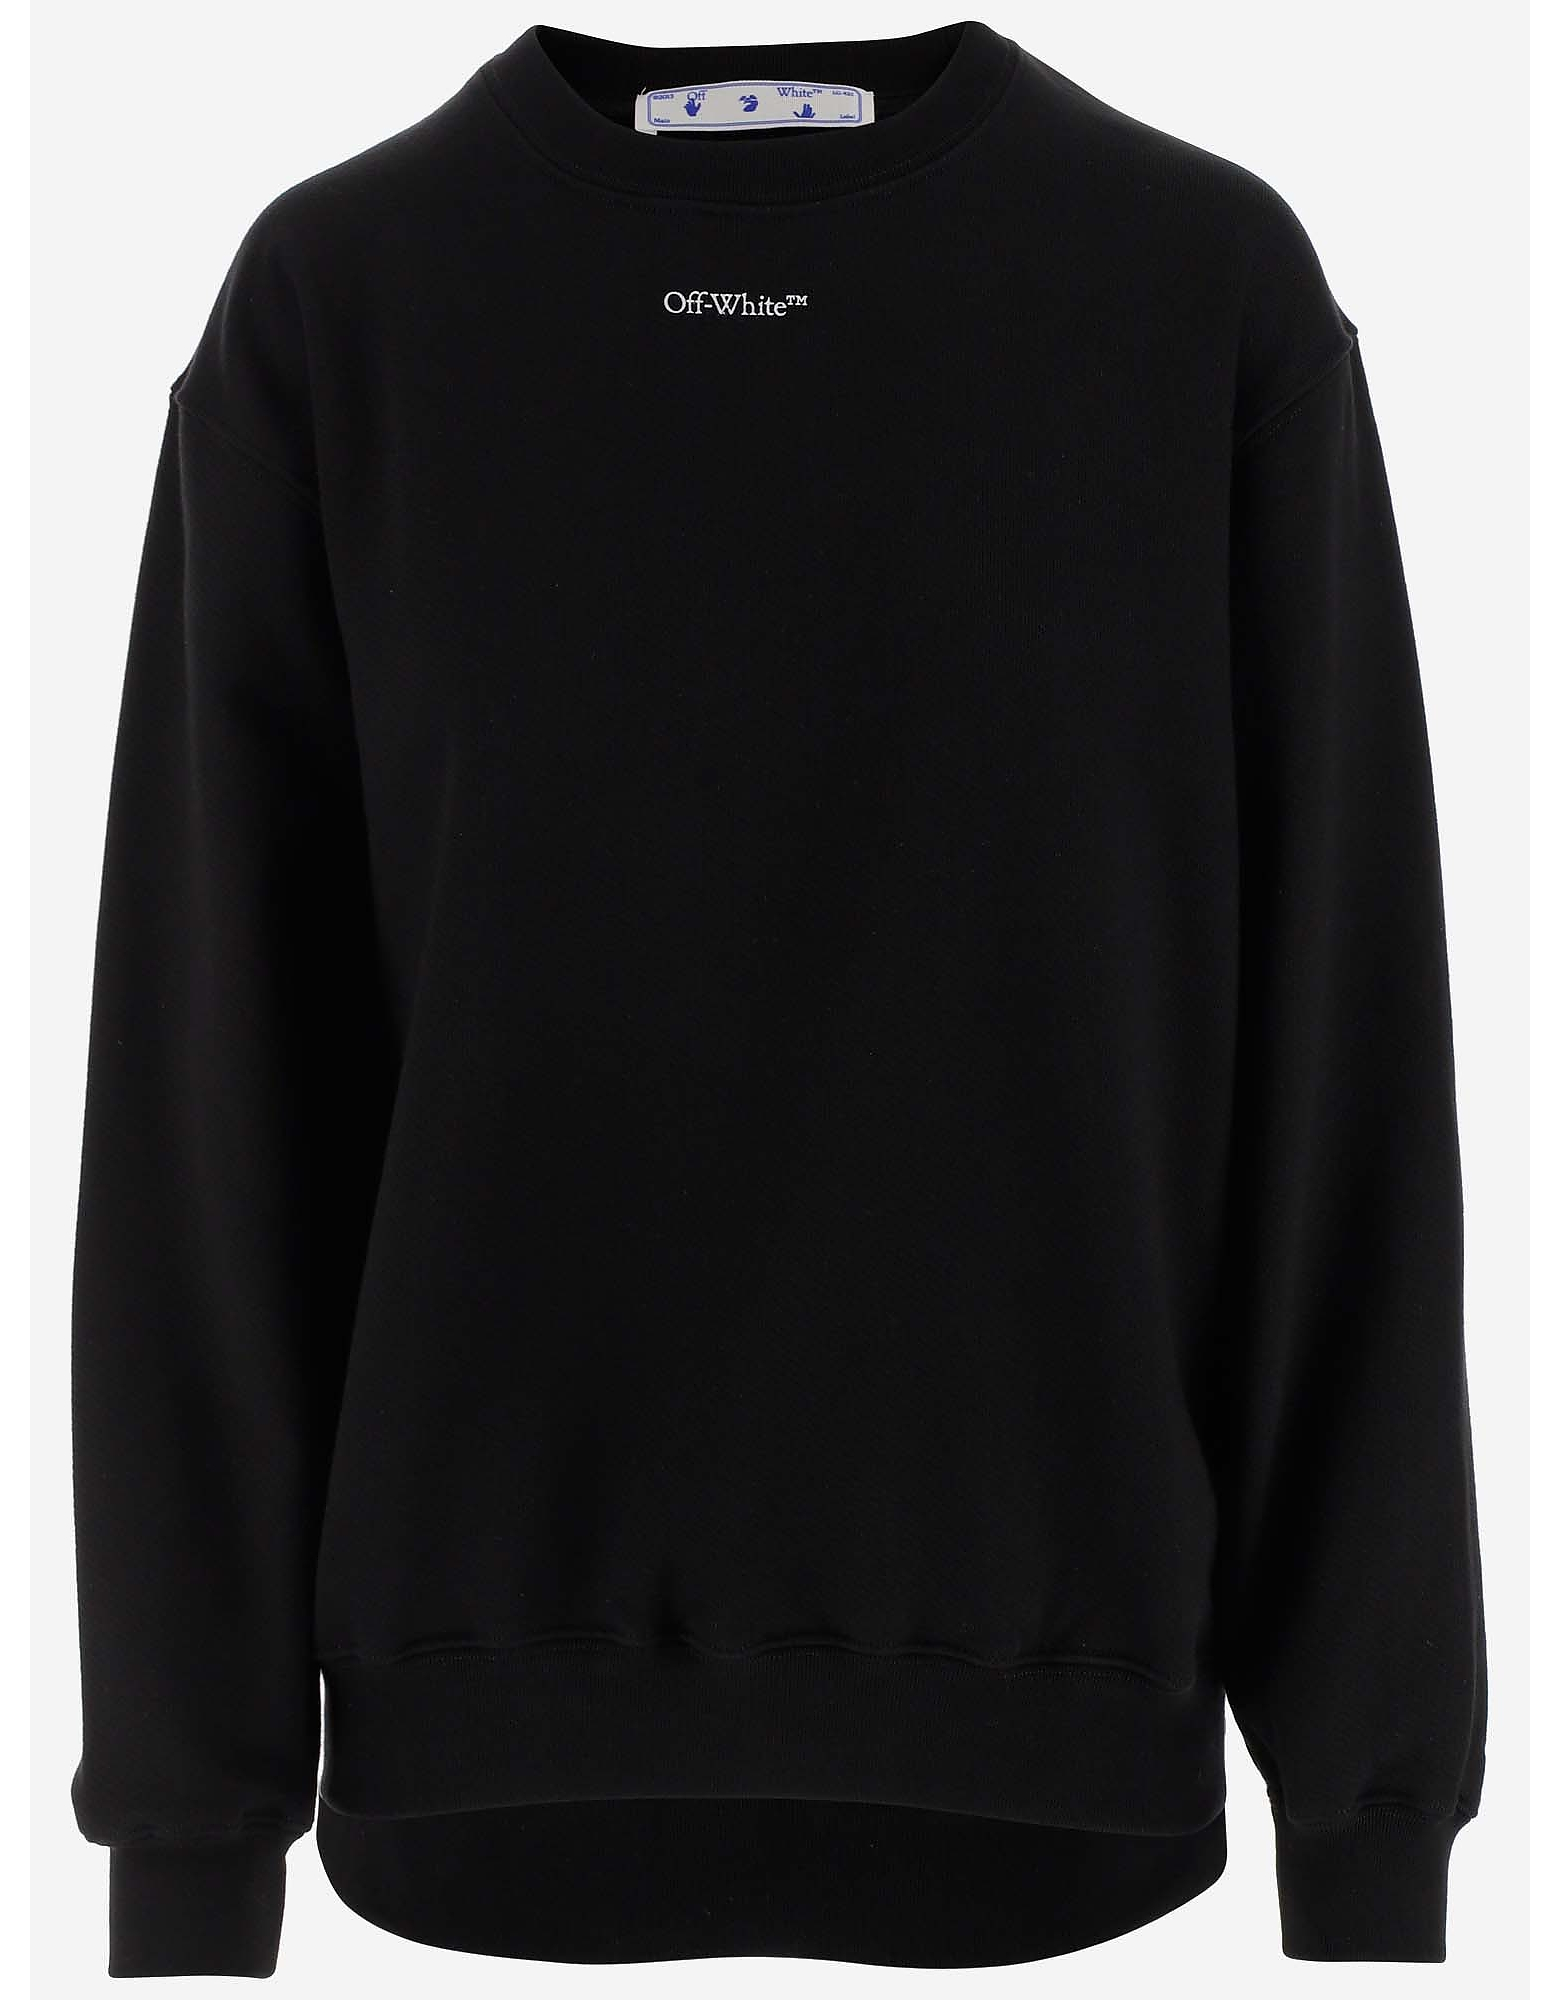 Off-White Designer Sweatshirts, Black Cotton Jersey Women's Sweatshirt